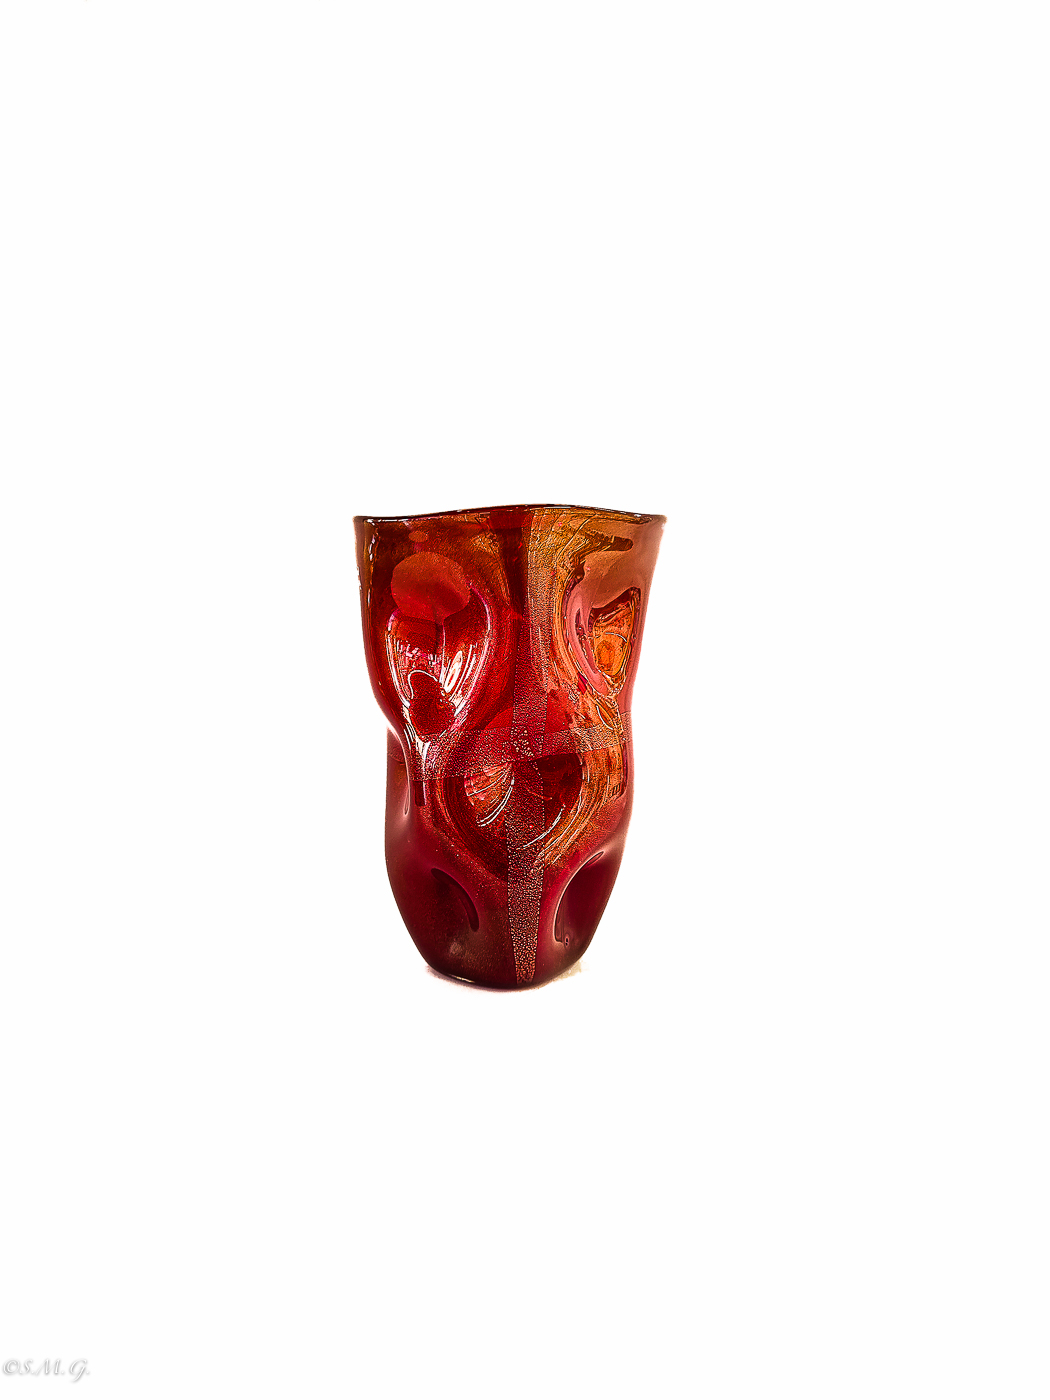 Murano Glass red vase with gold